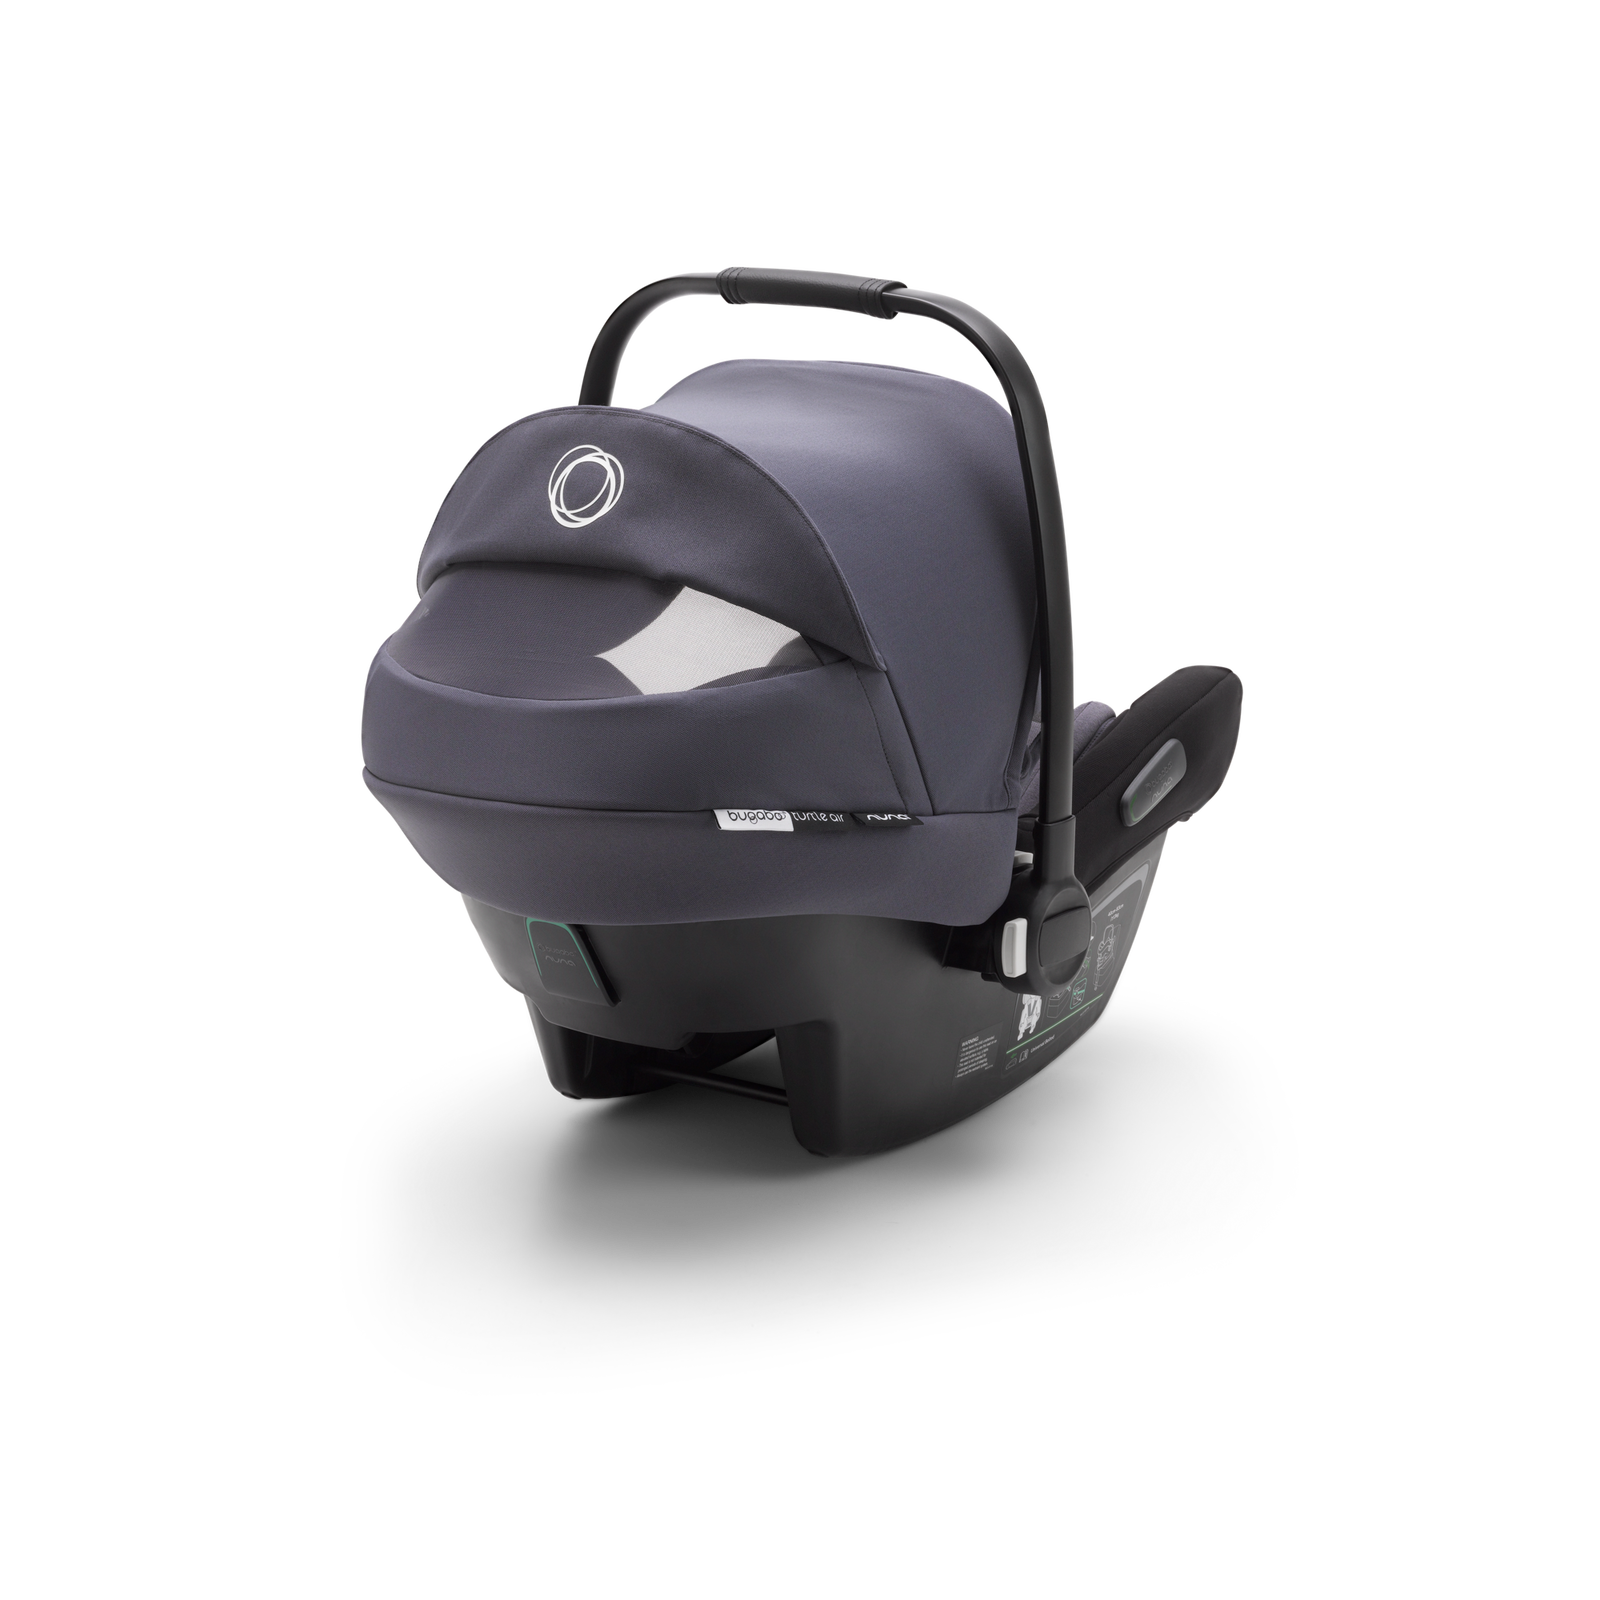 Bugaboo Turtle Air by Nuna car seat